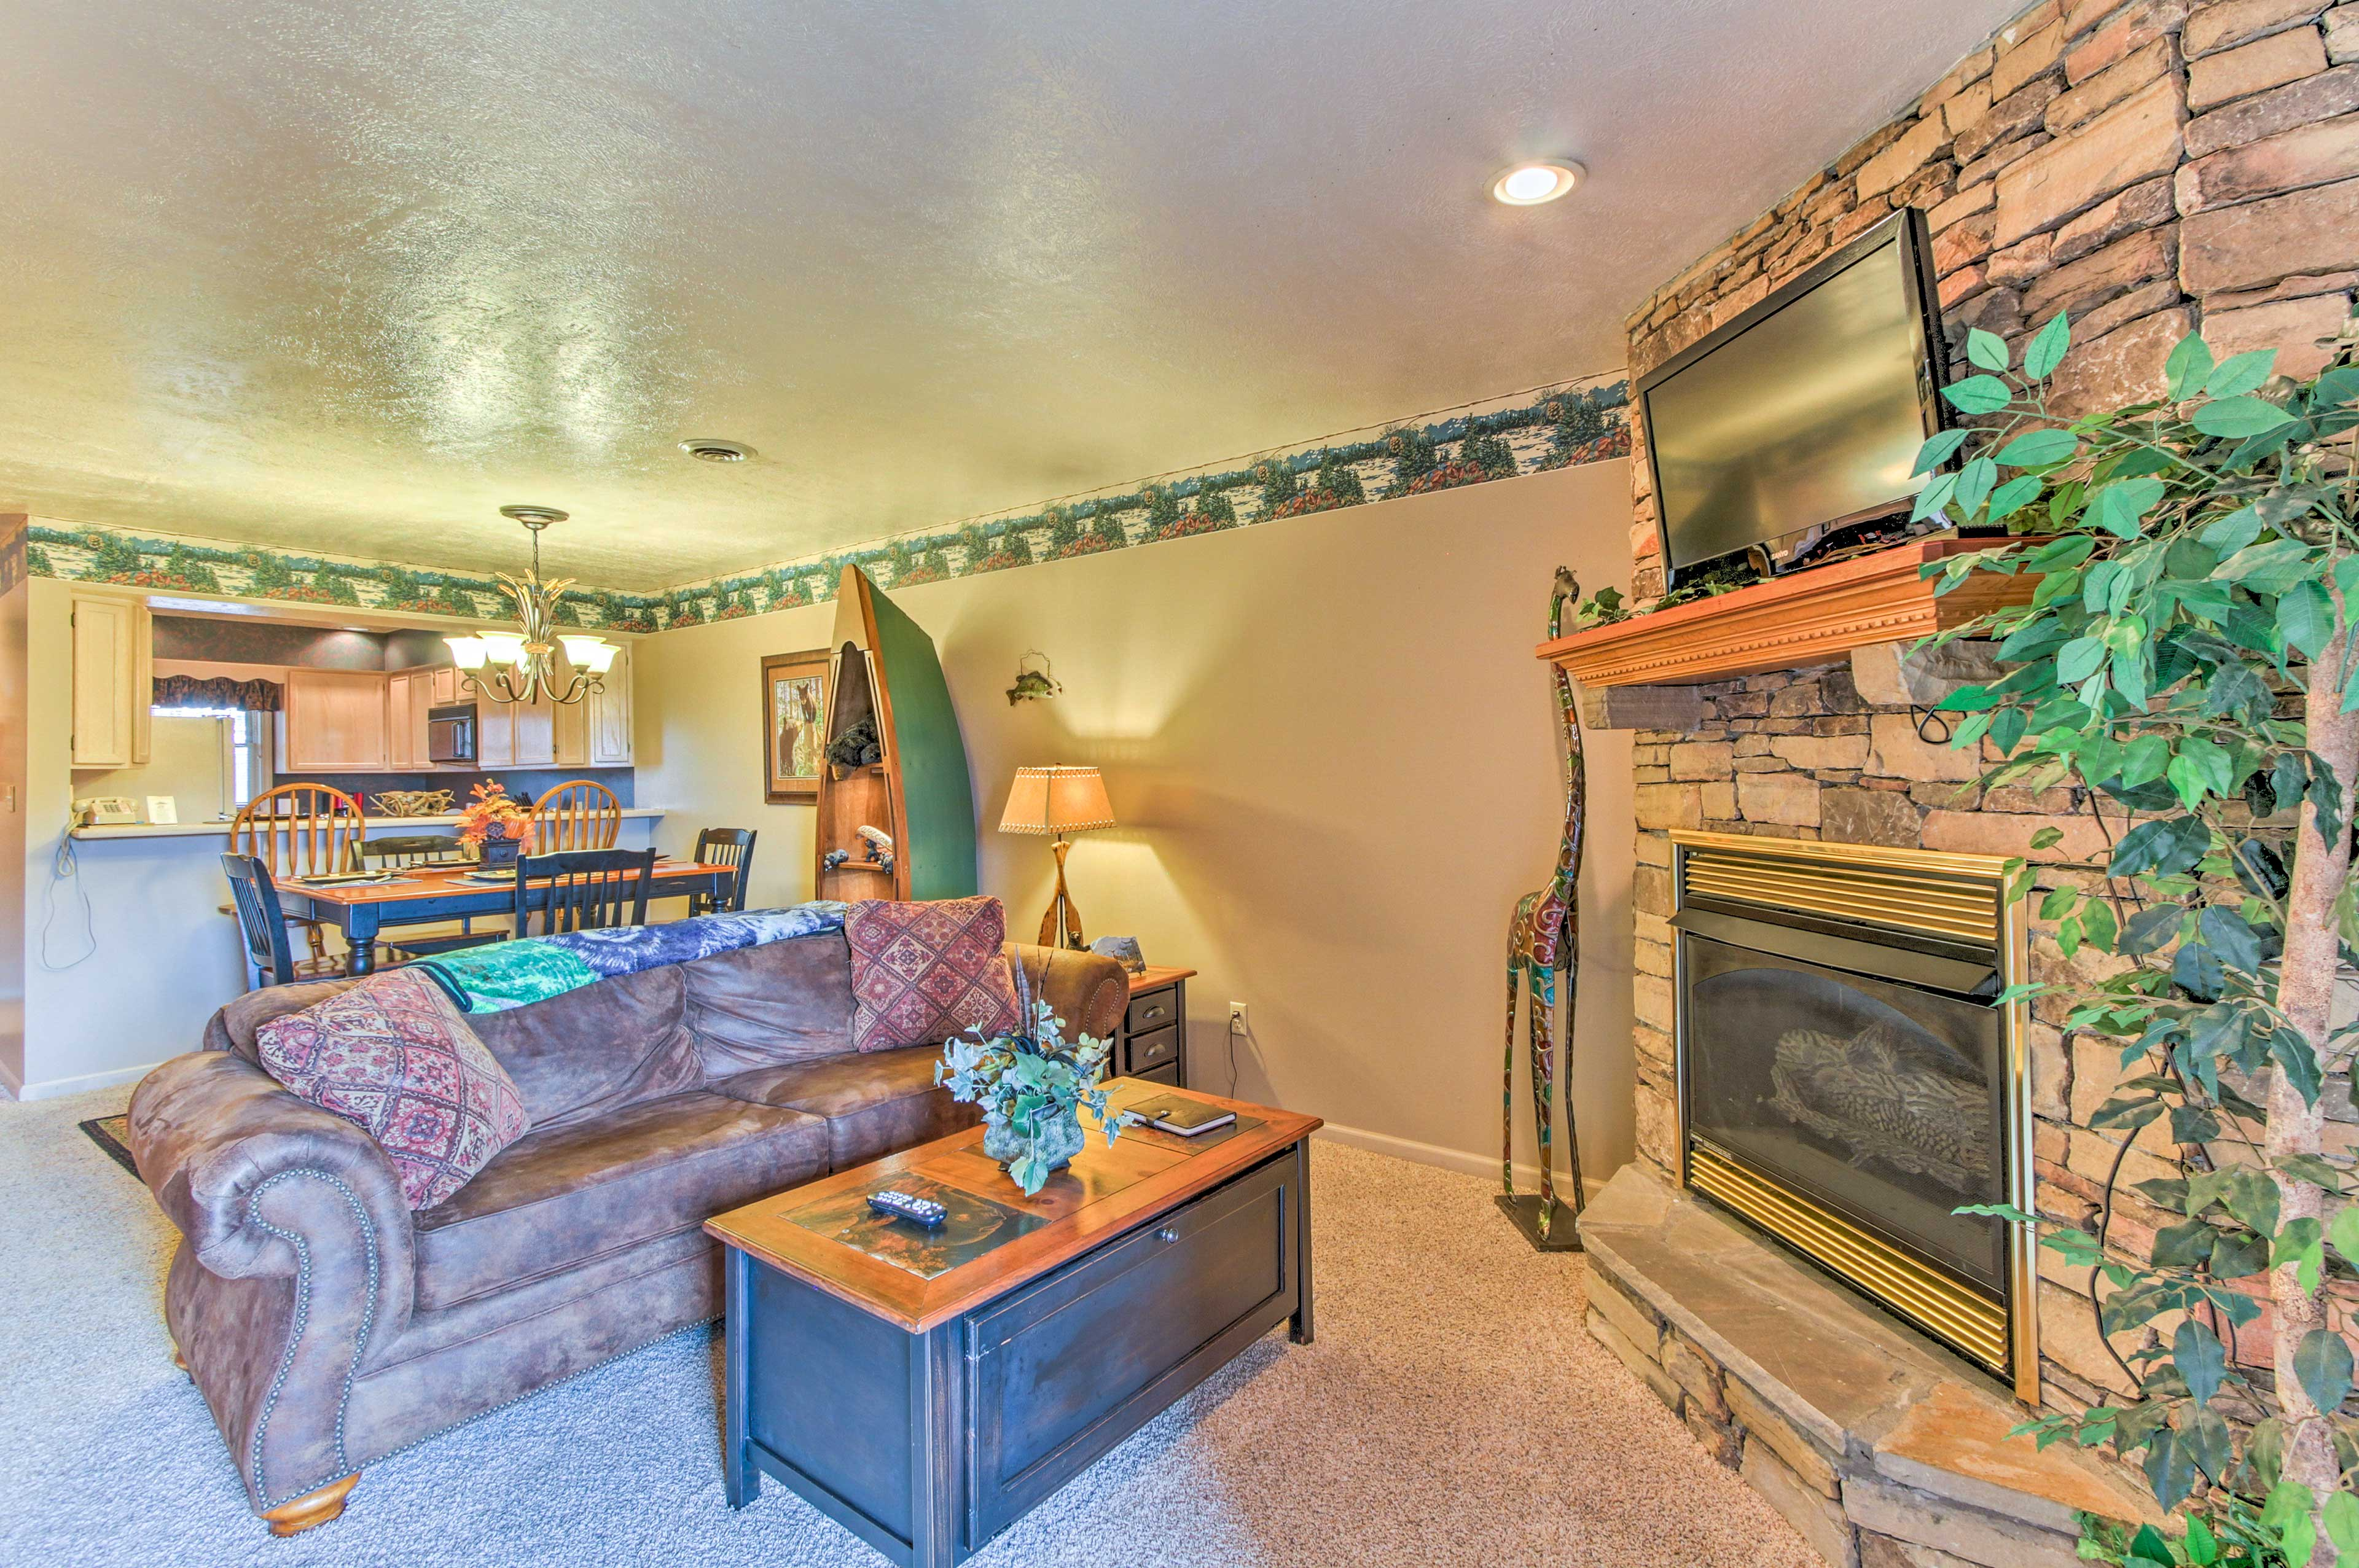 From the fireplace to the balcony space, this condo has it all!